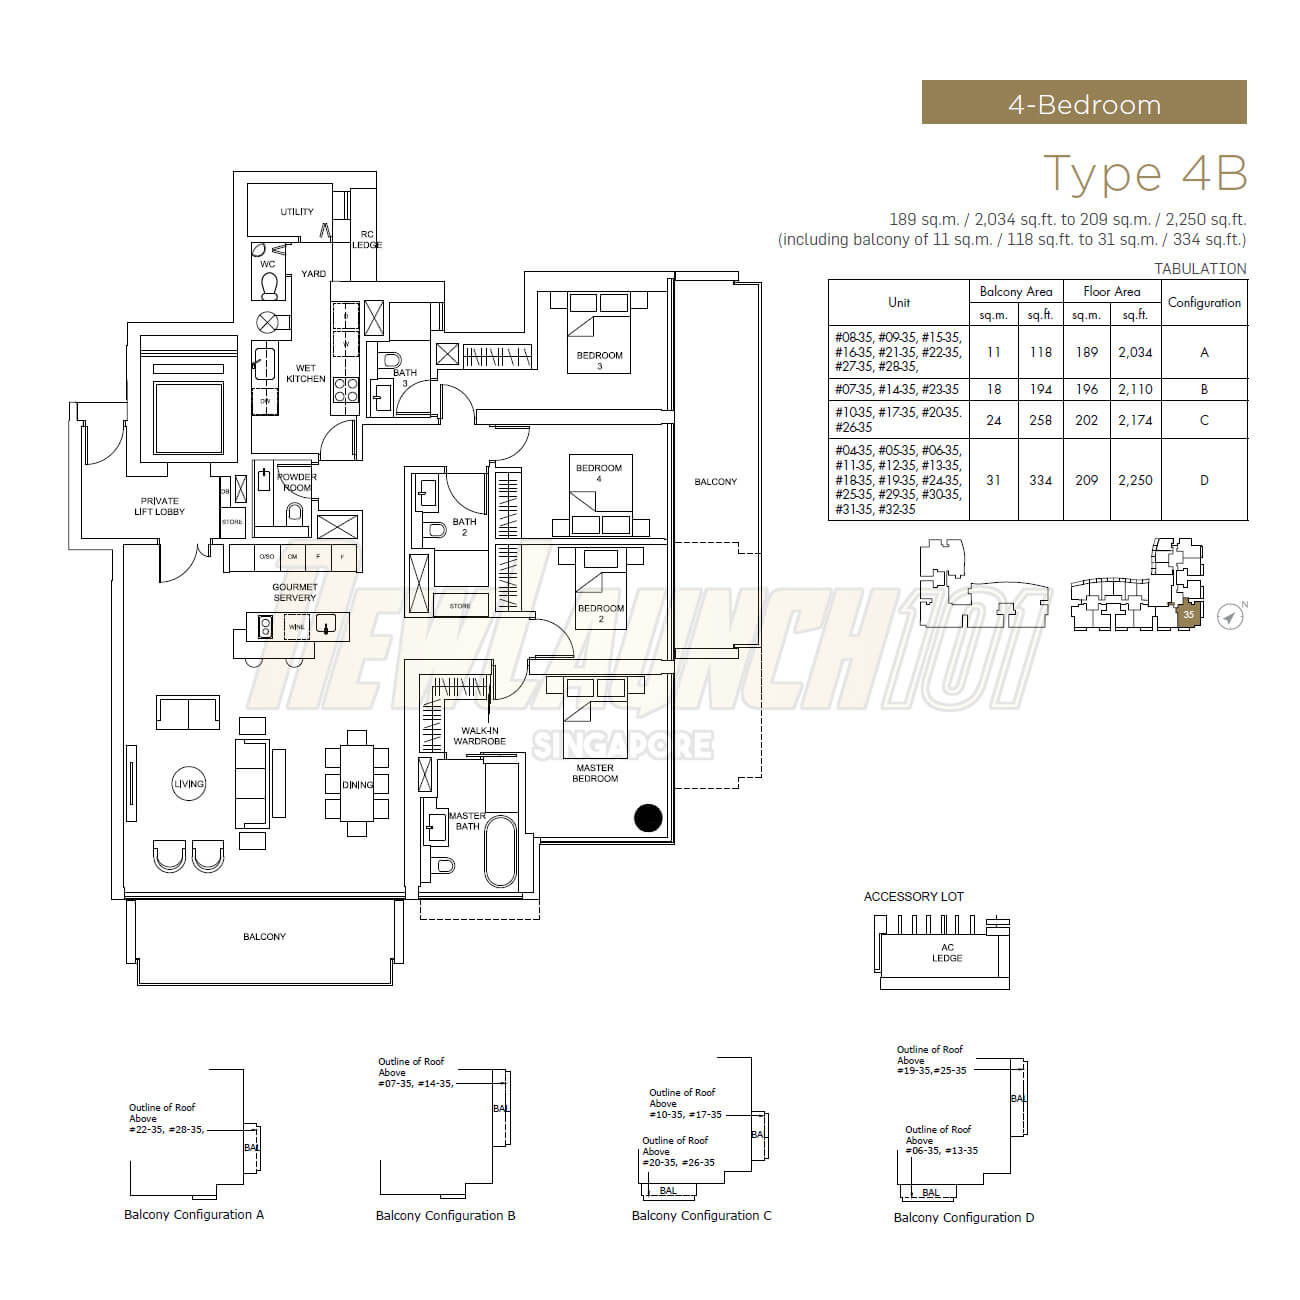 Marina One Residences Floor Plan 4-Bedroom Type 4B